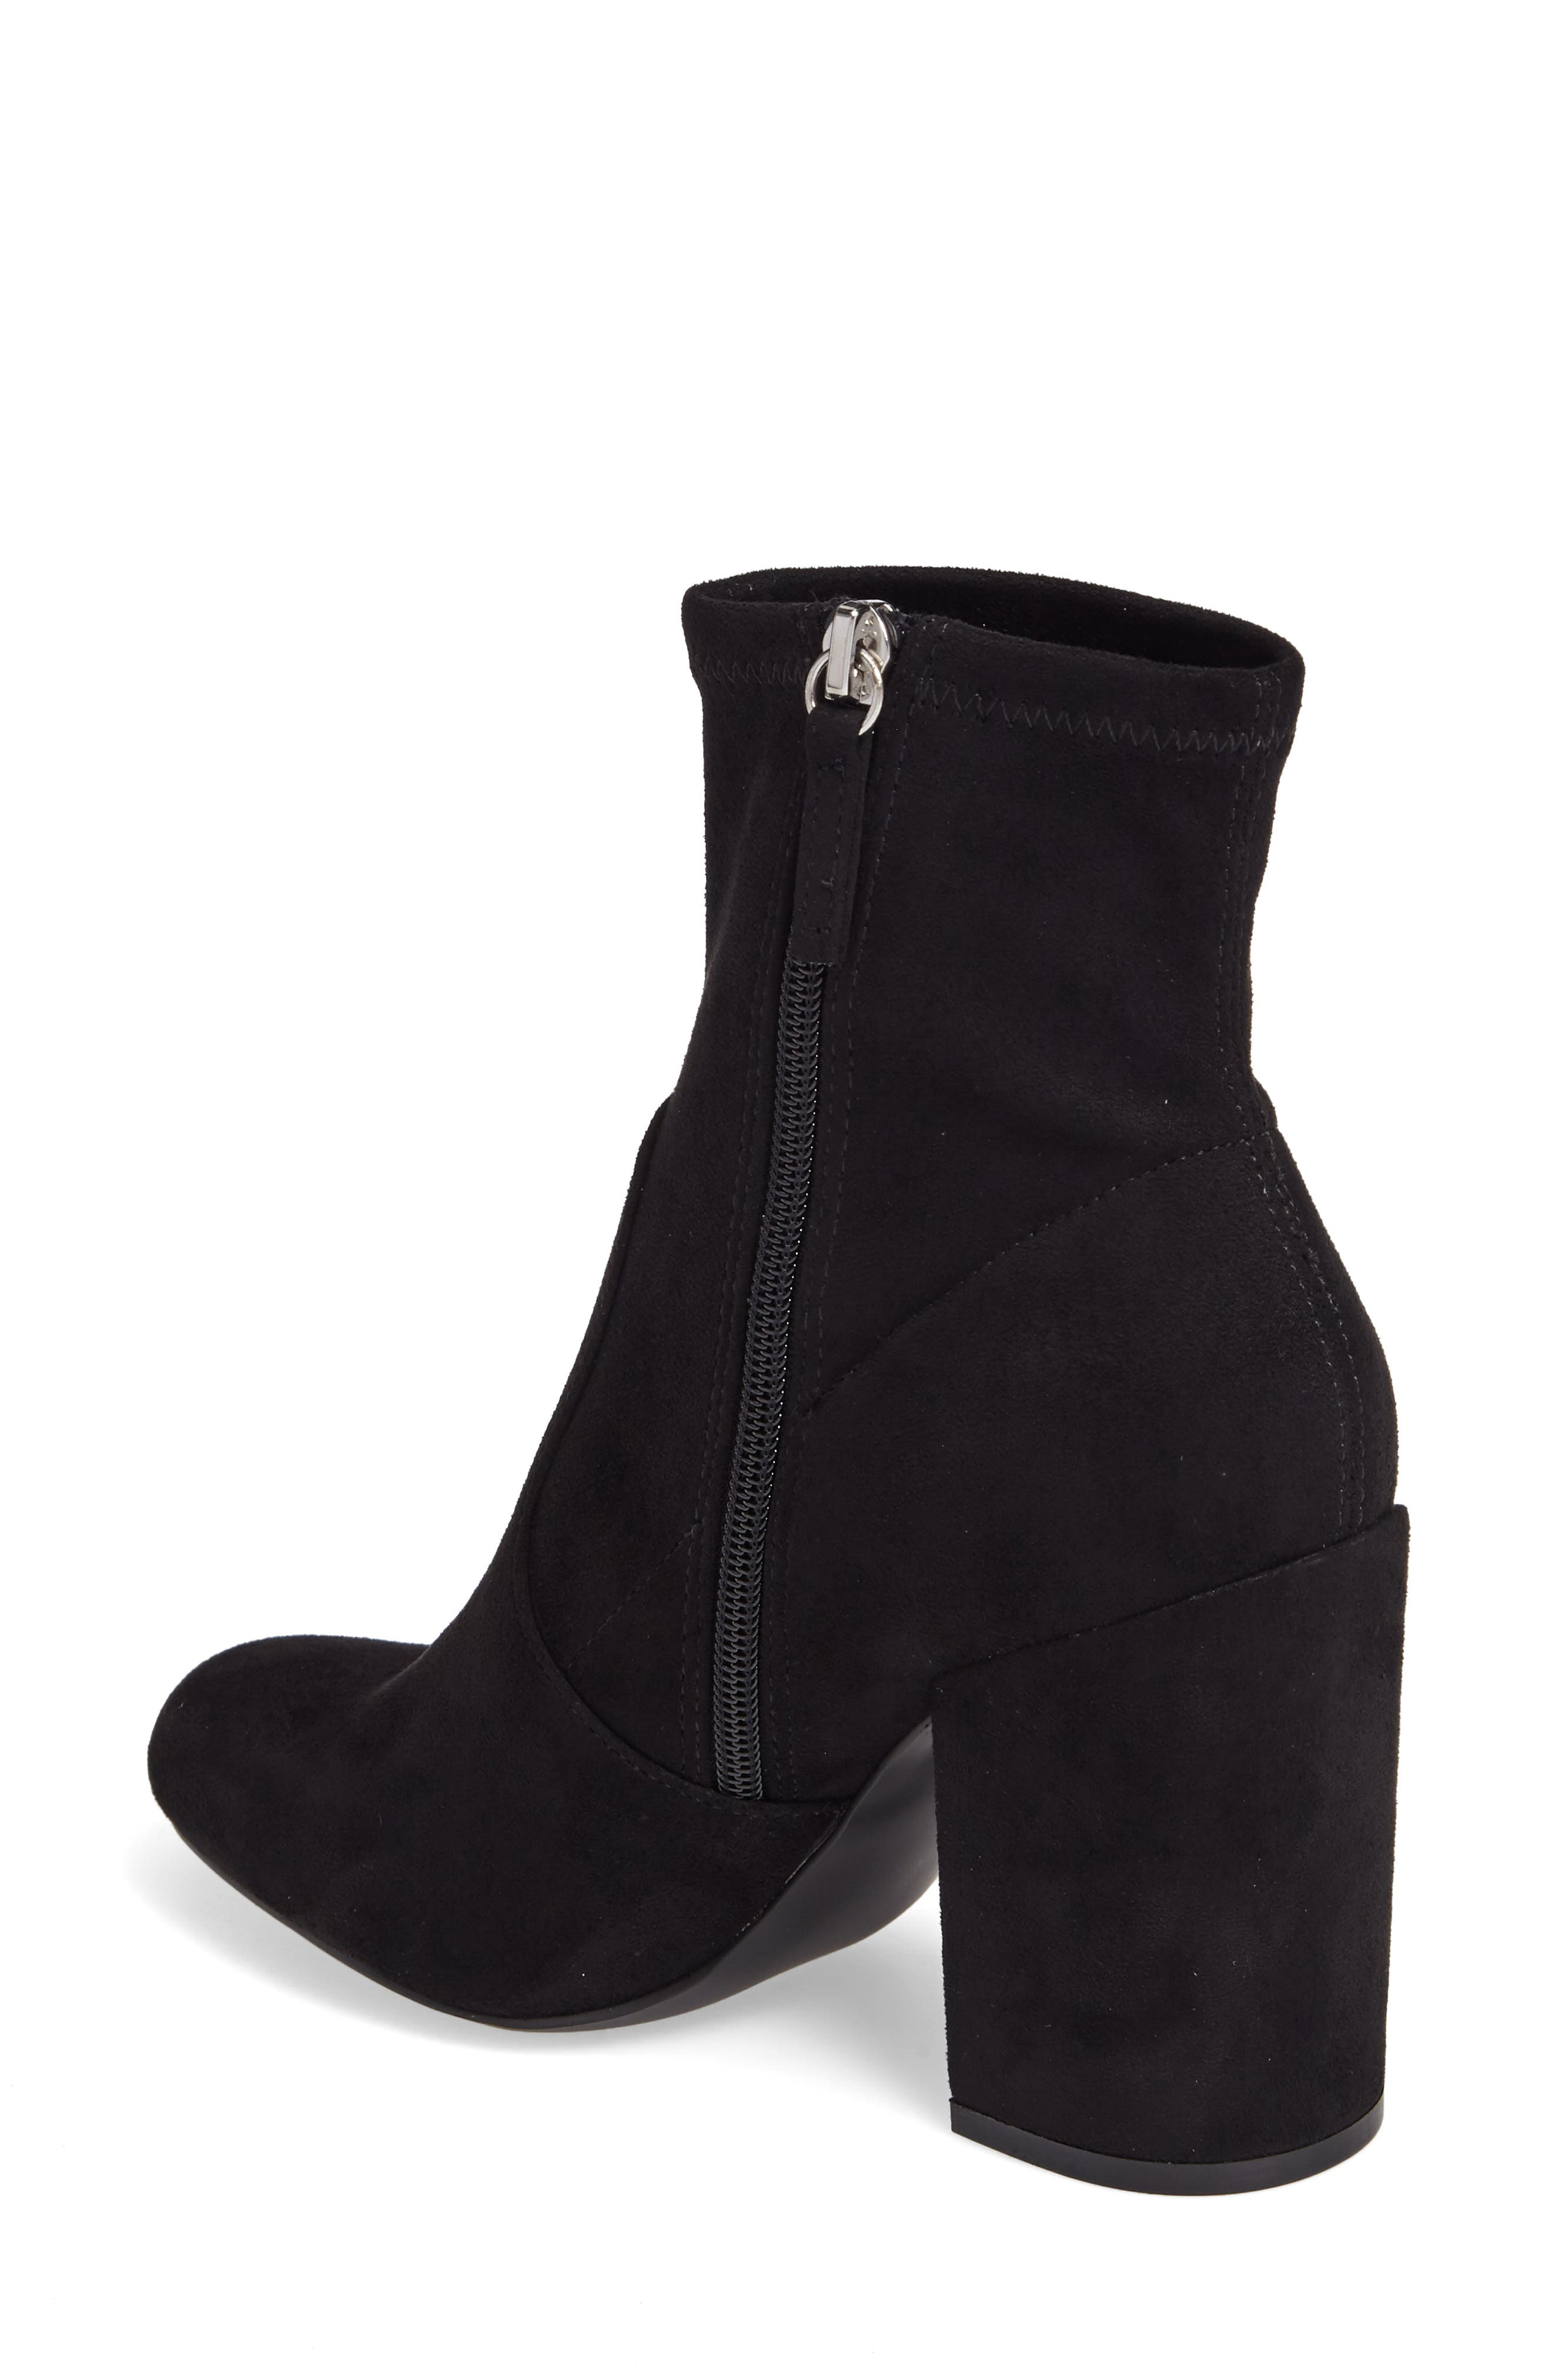 Gaze Bootie,                             Alternate thumbnail 2, color,                             Black Suede